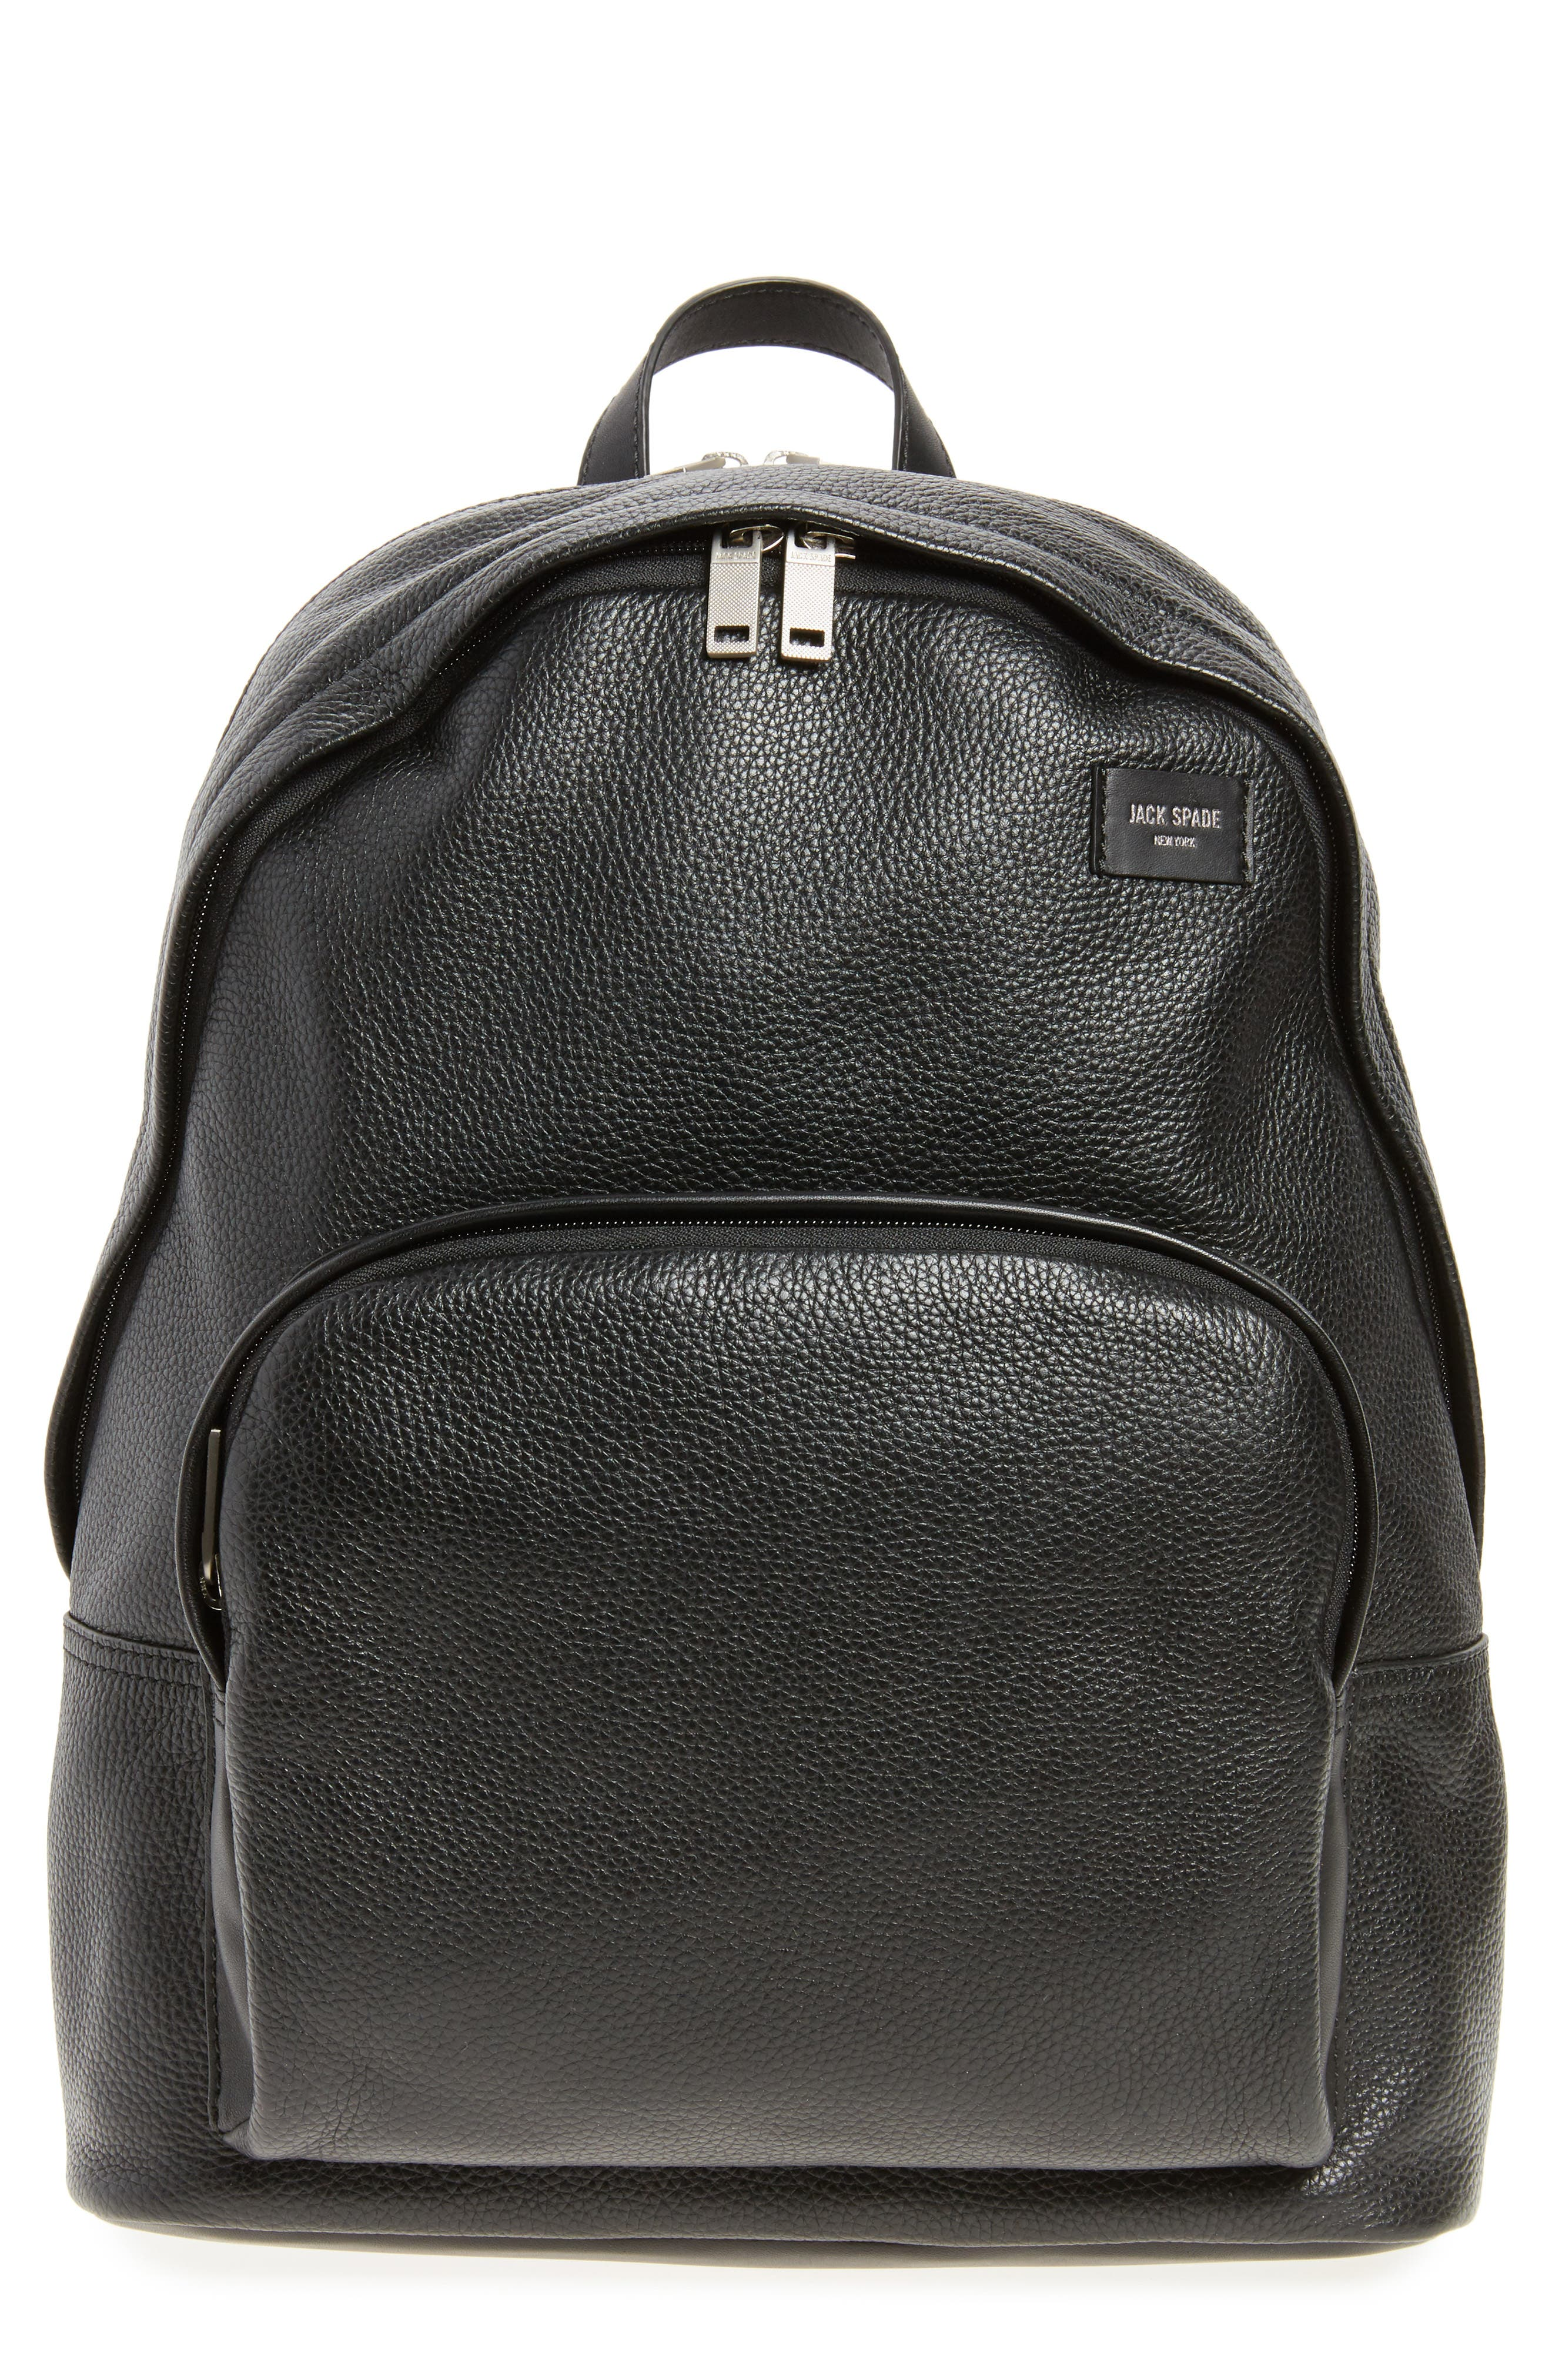 Pebbled Leather Backpack,                         Main,                         color, 001